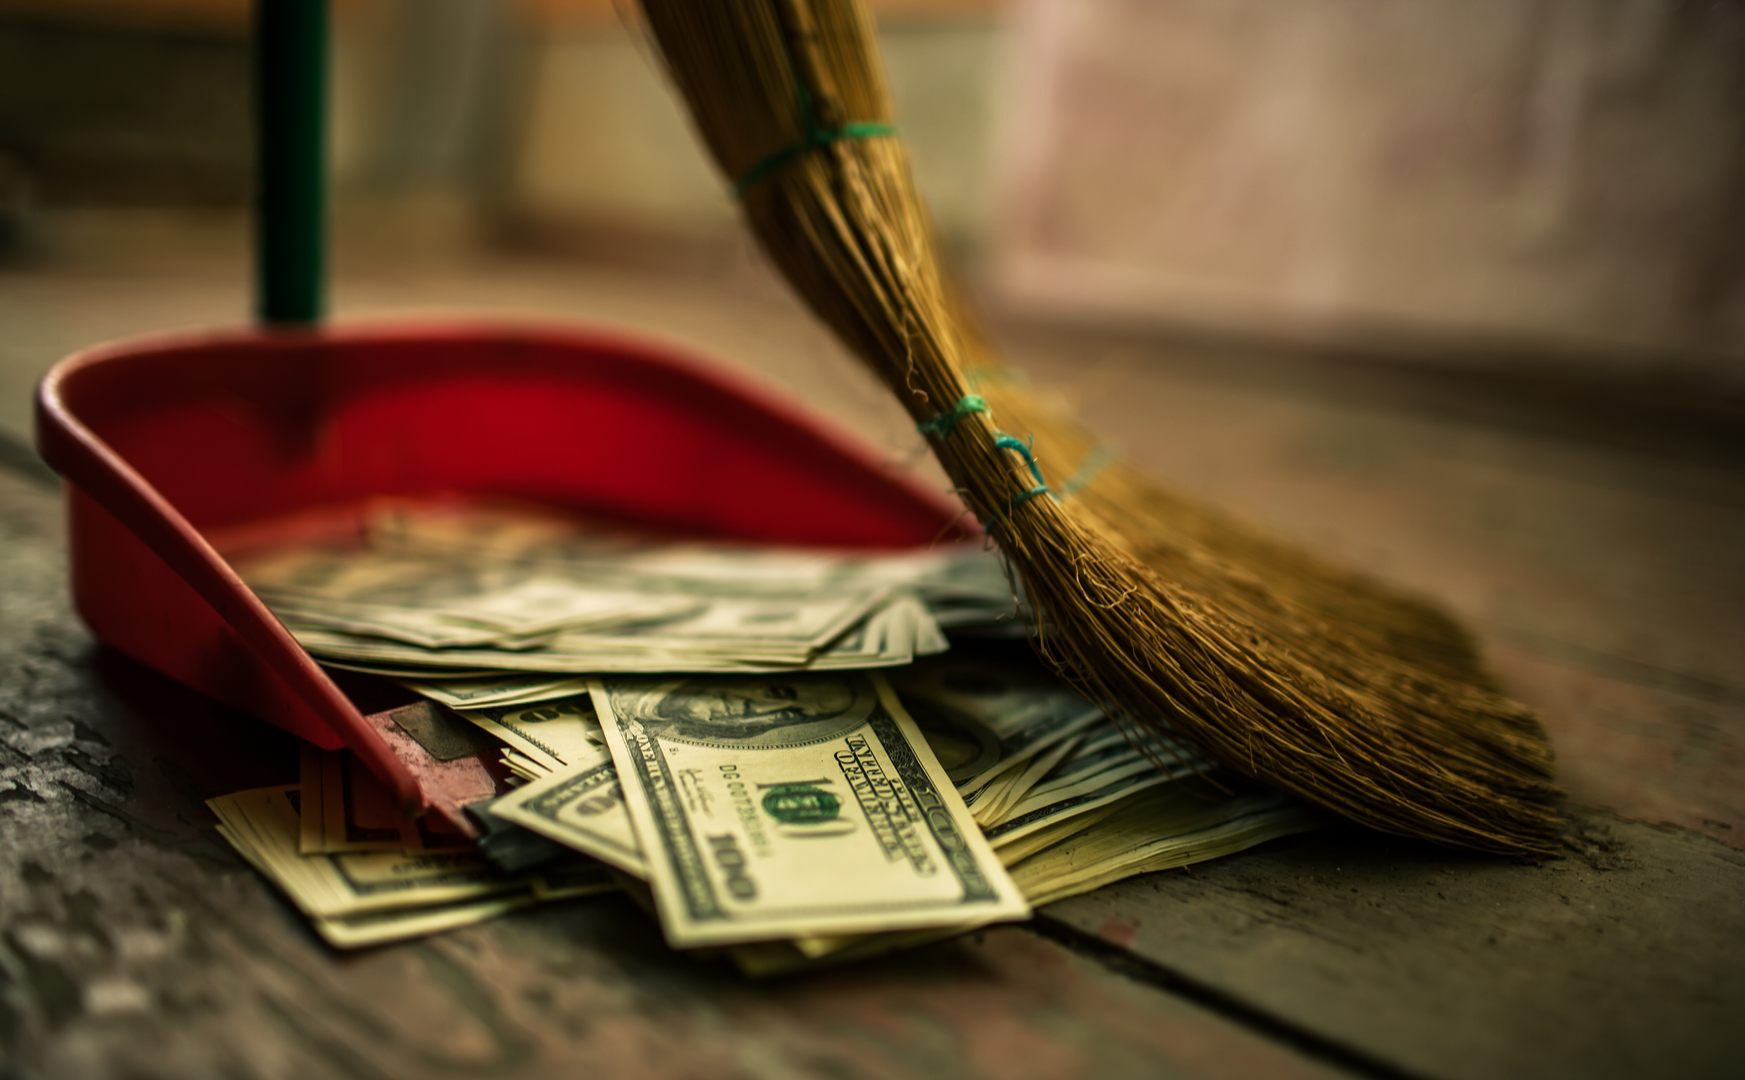 Someone using a broom to sweep dollar bills into a dust pan